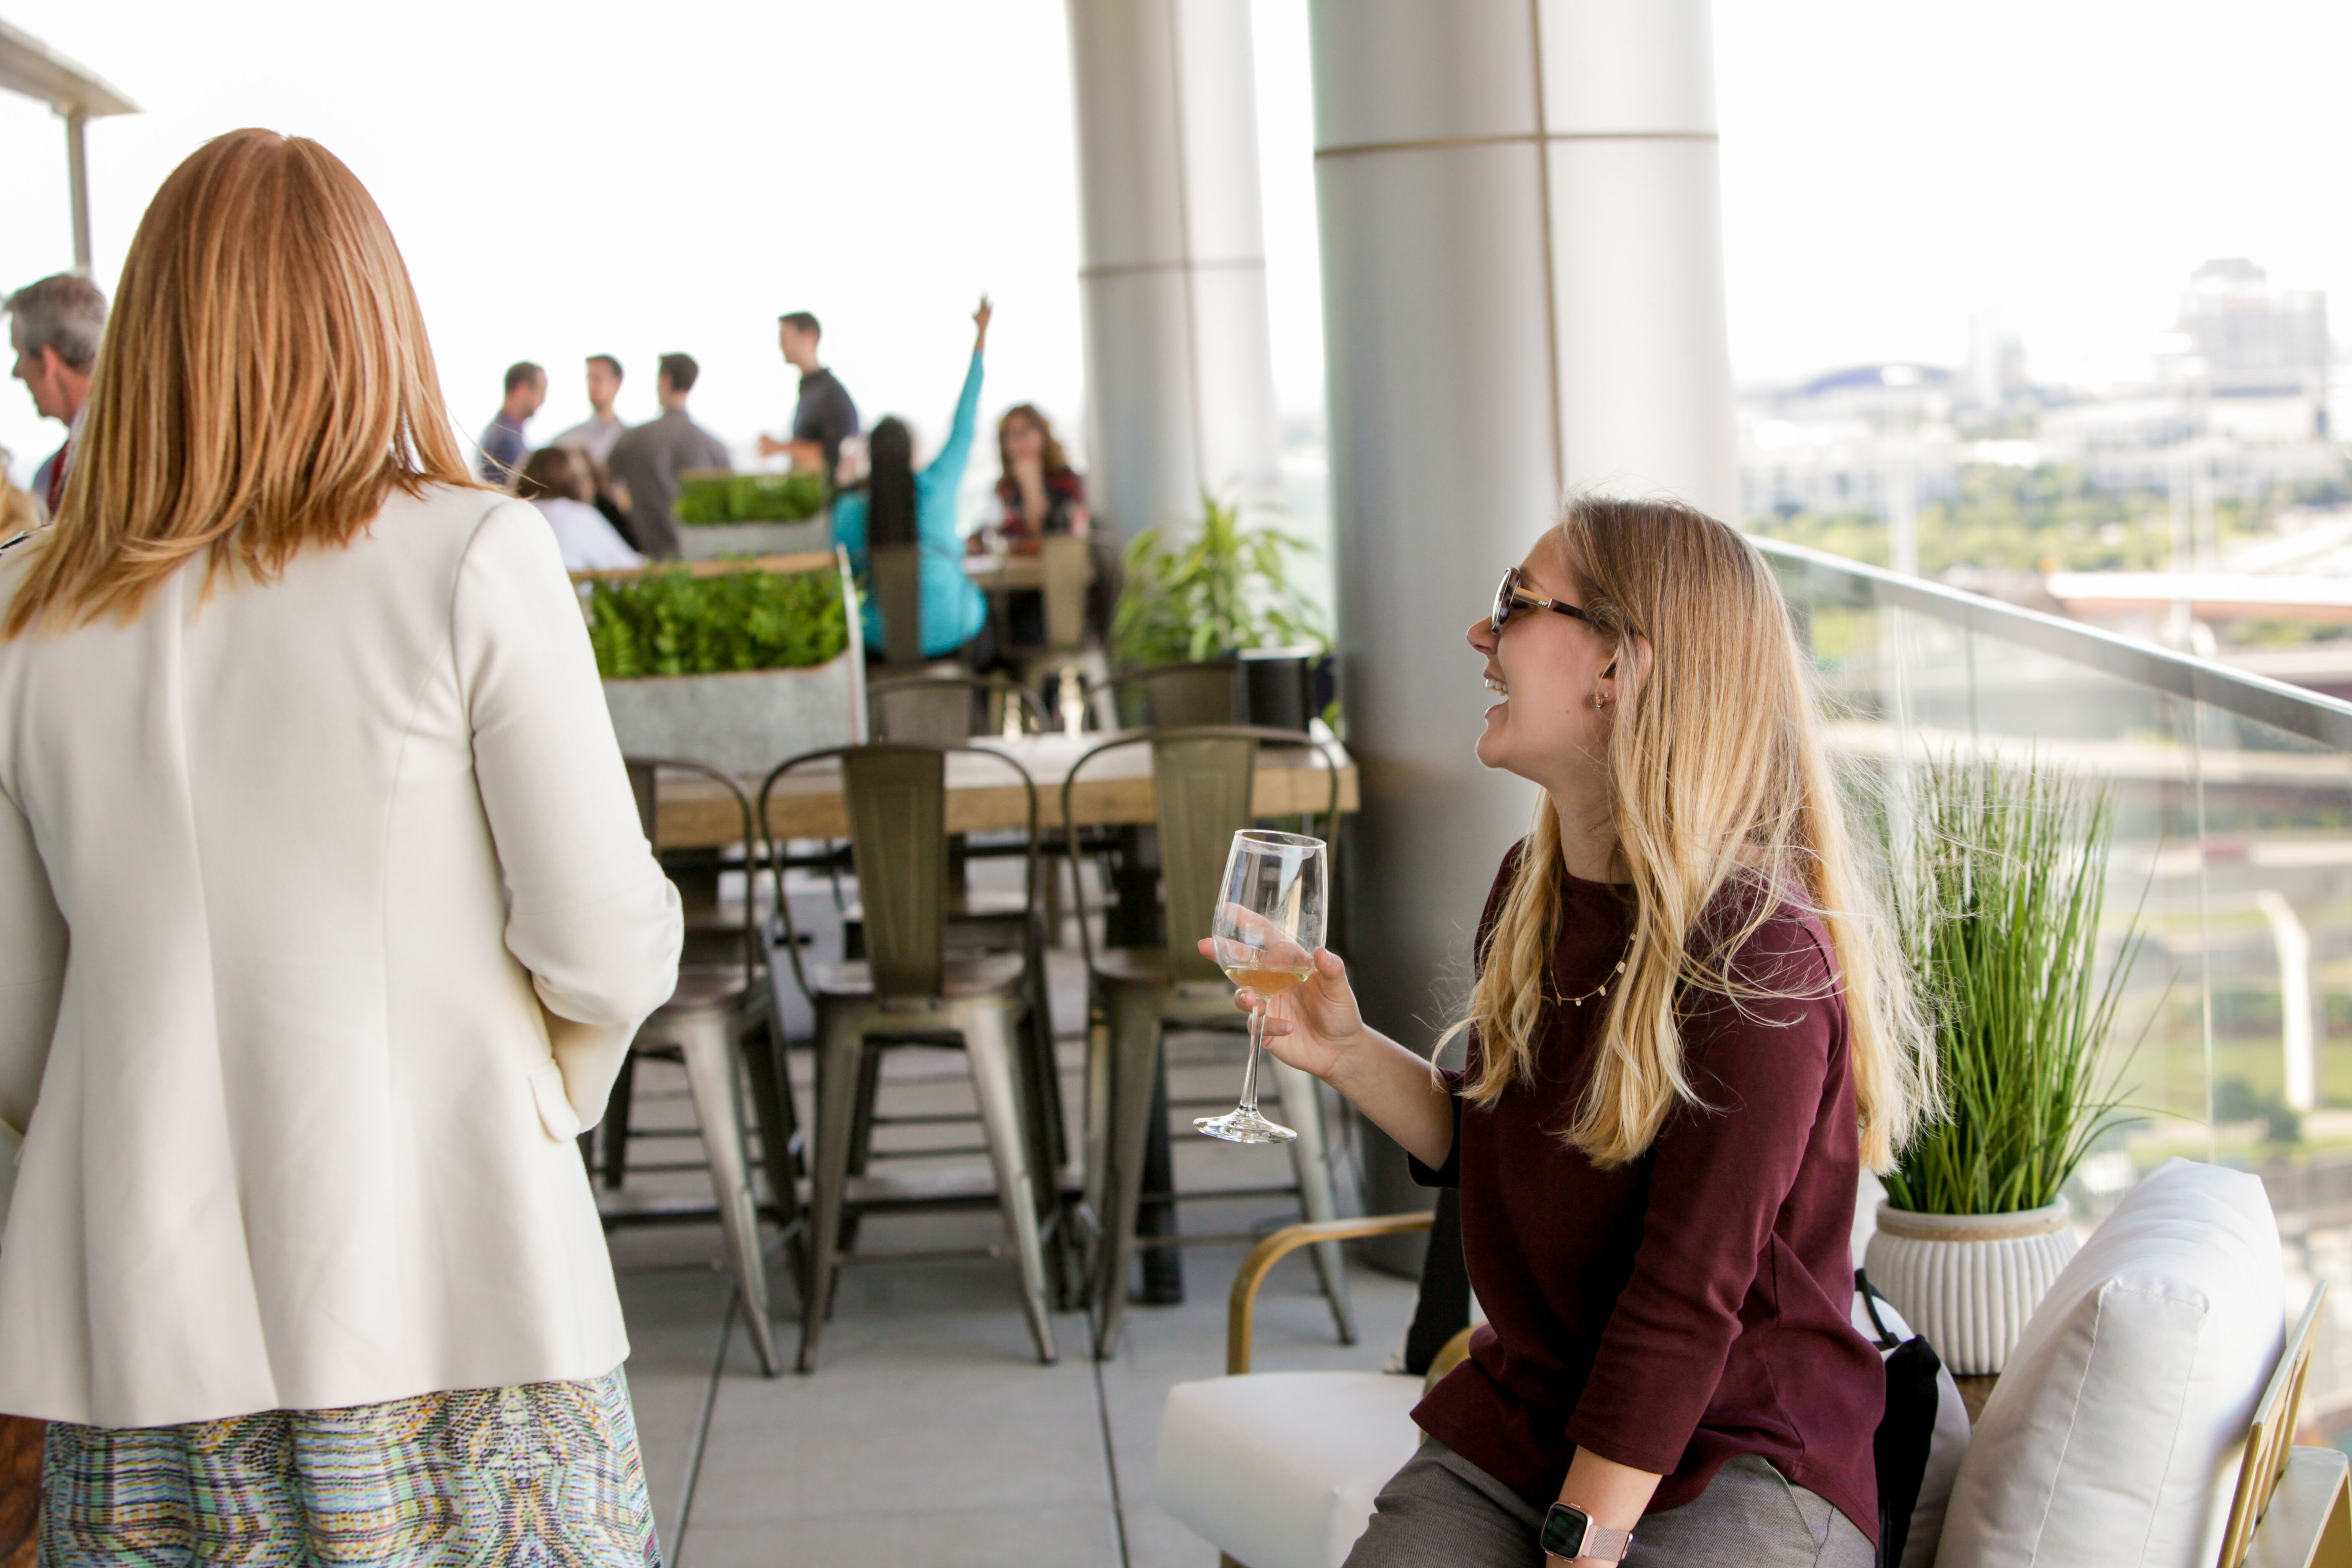 Colleagues and clients enjoy drinks on the Lifeblue balcony during the official grand opening for the new office.